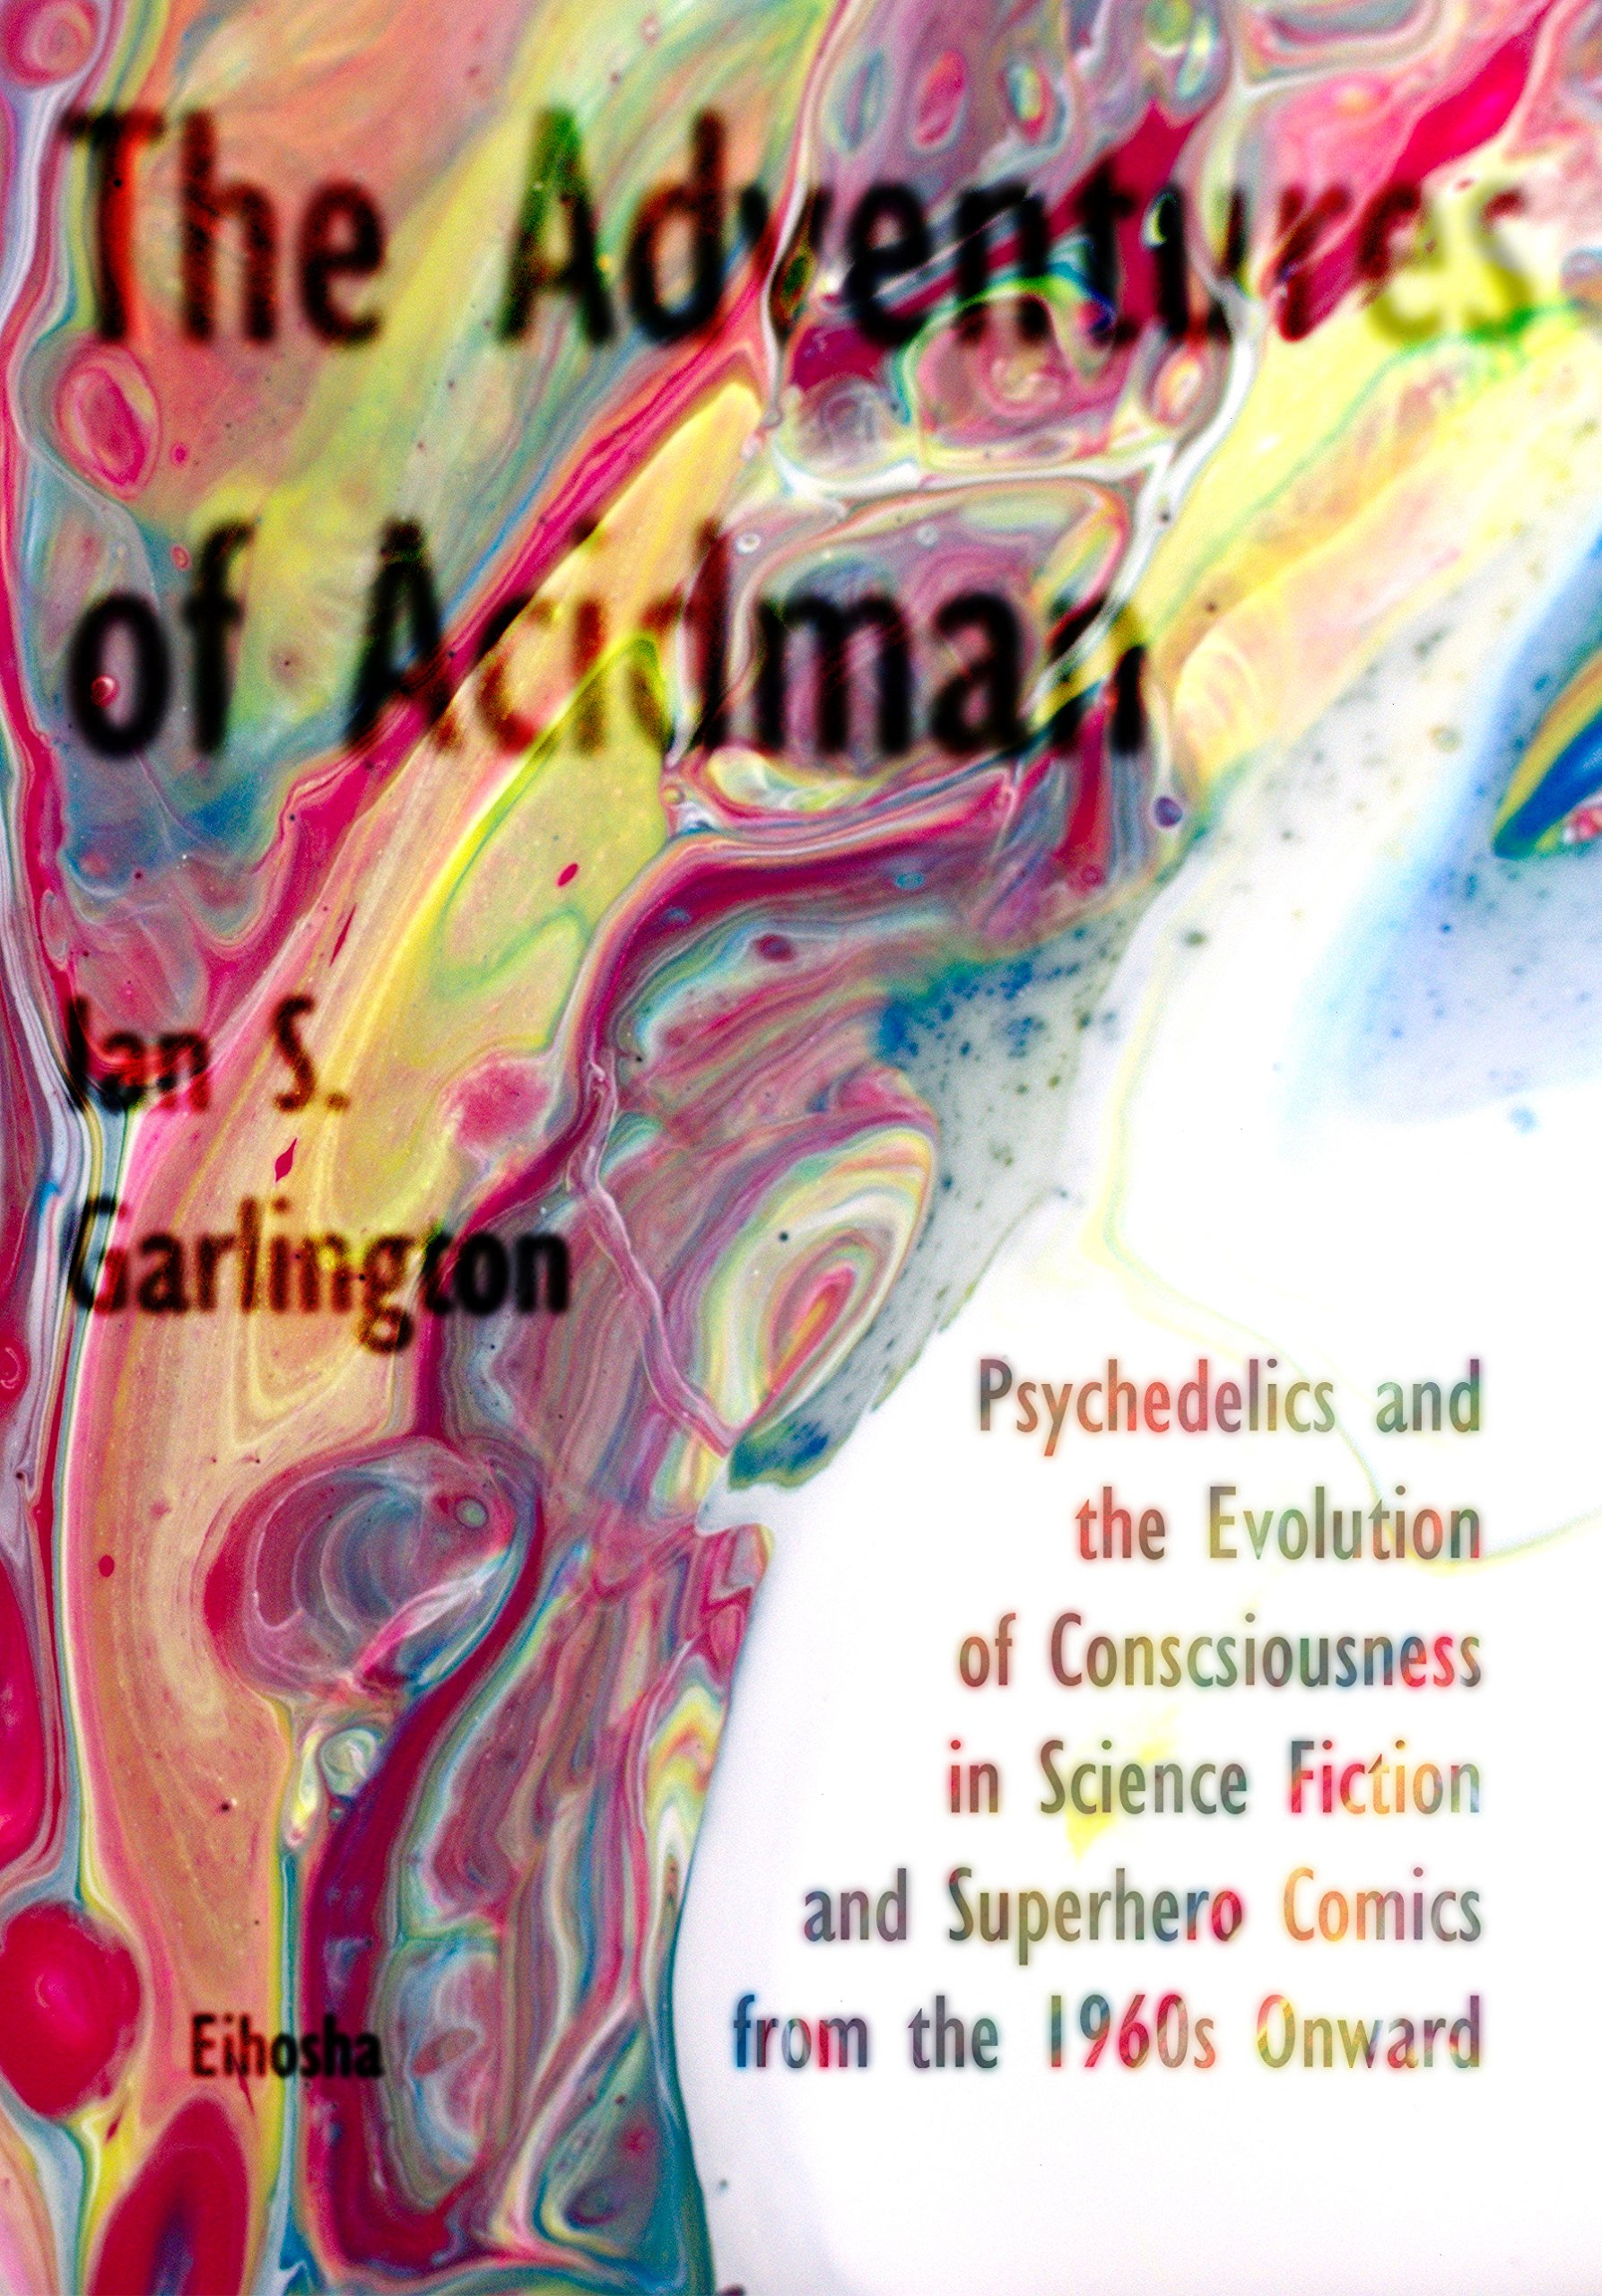 Download The Adventures of Acidman: Psychedelics and the Evolution of Consciousness in Science Fiction and Superhero Comics from the 1960s Onward PDF